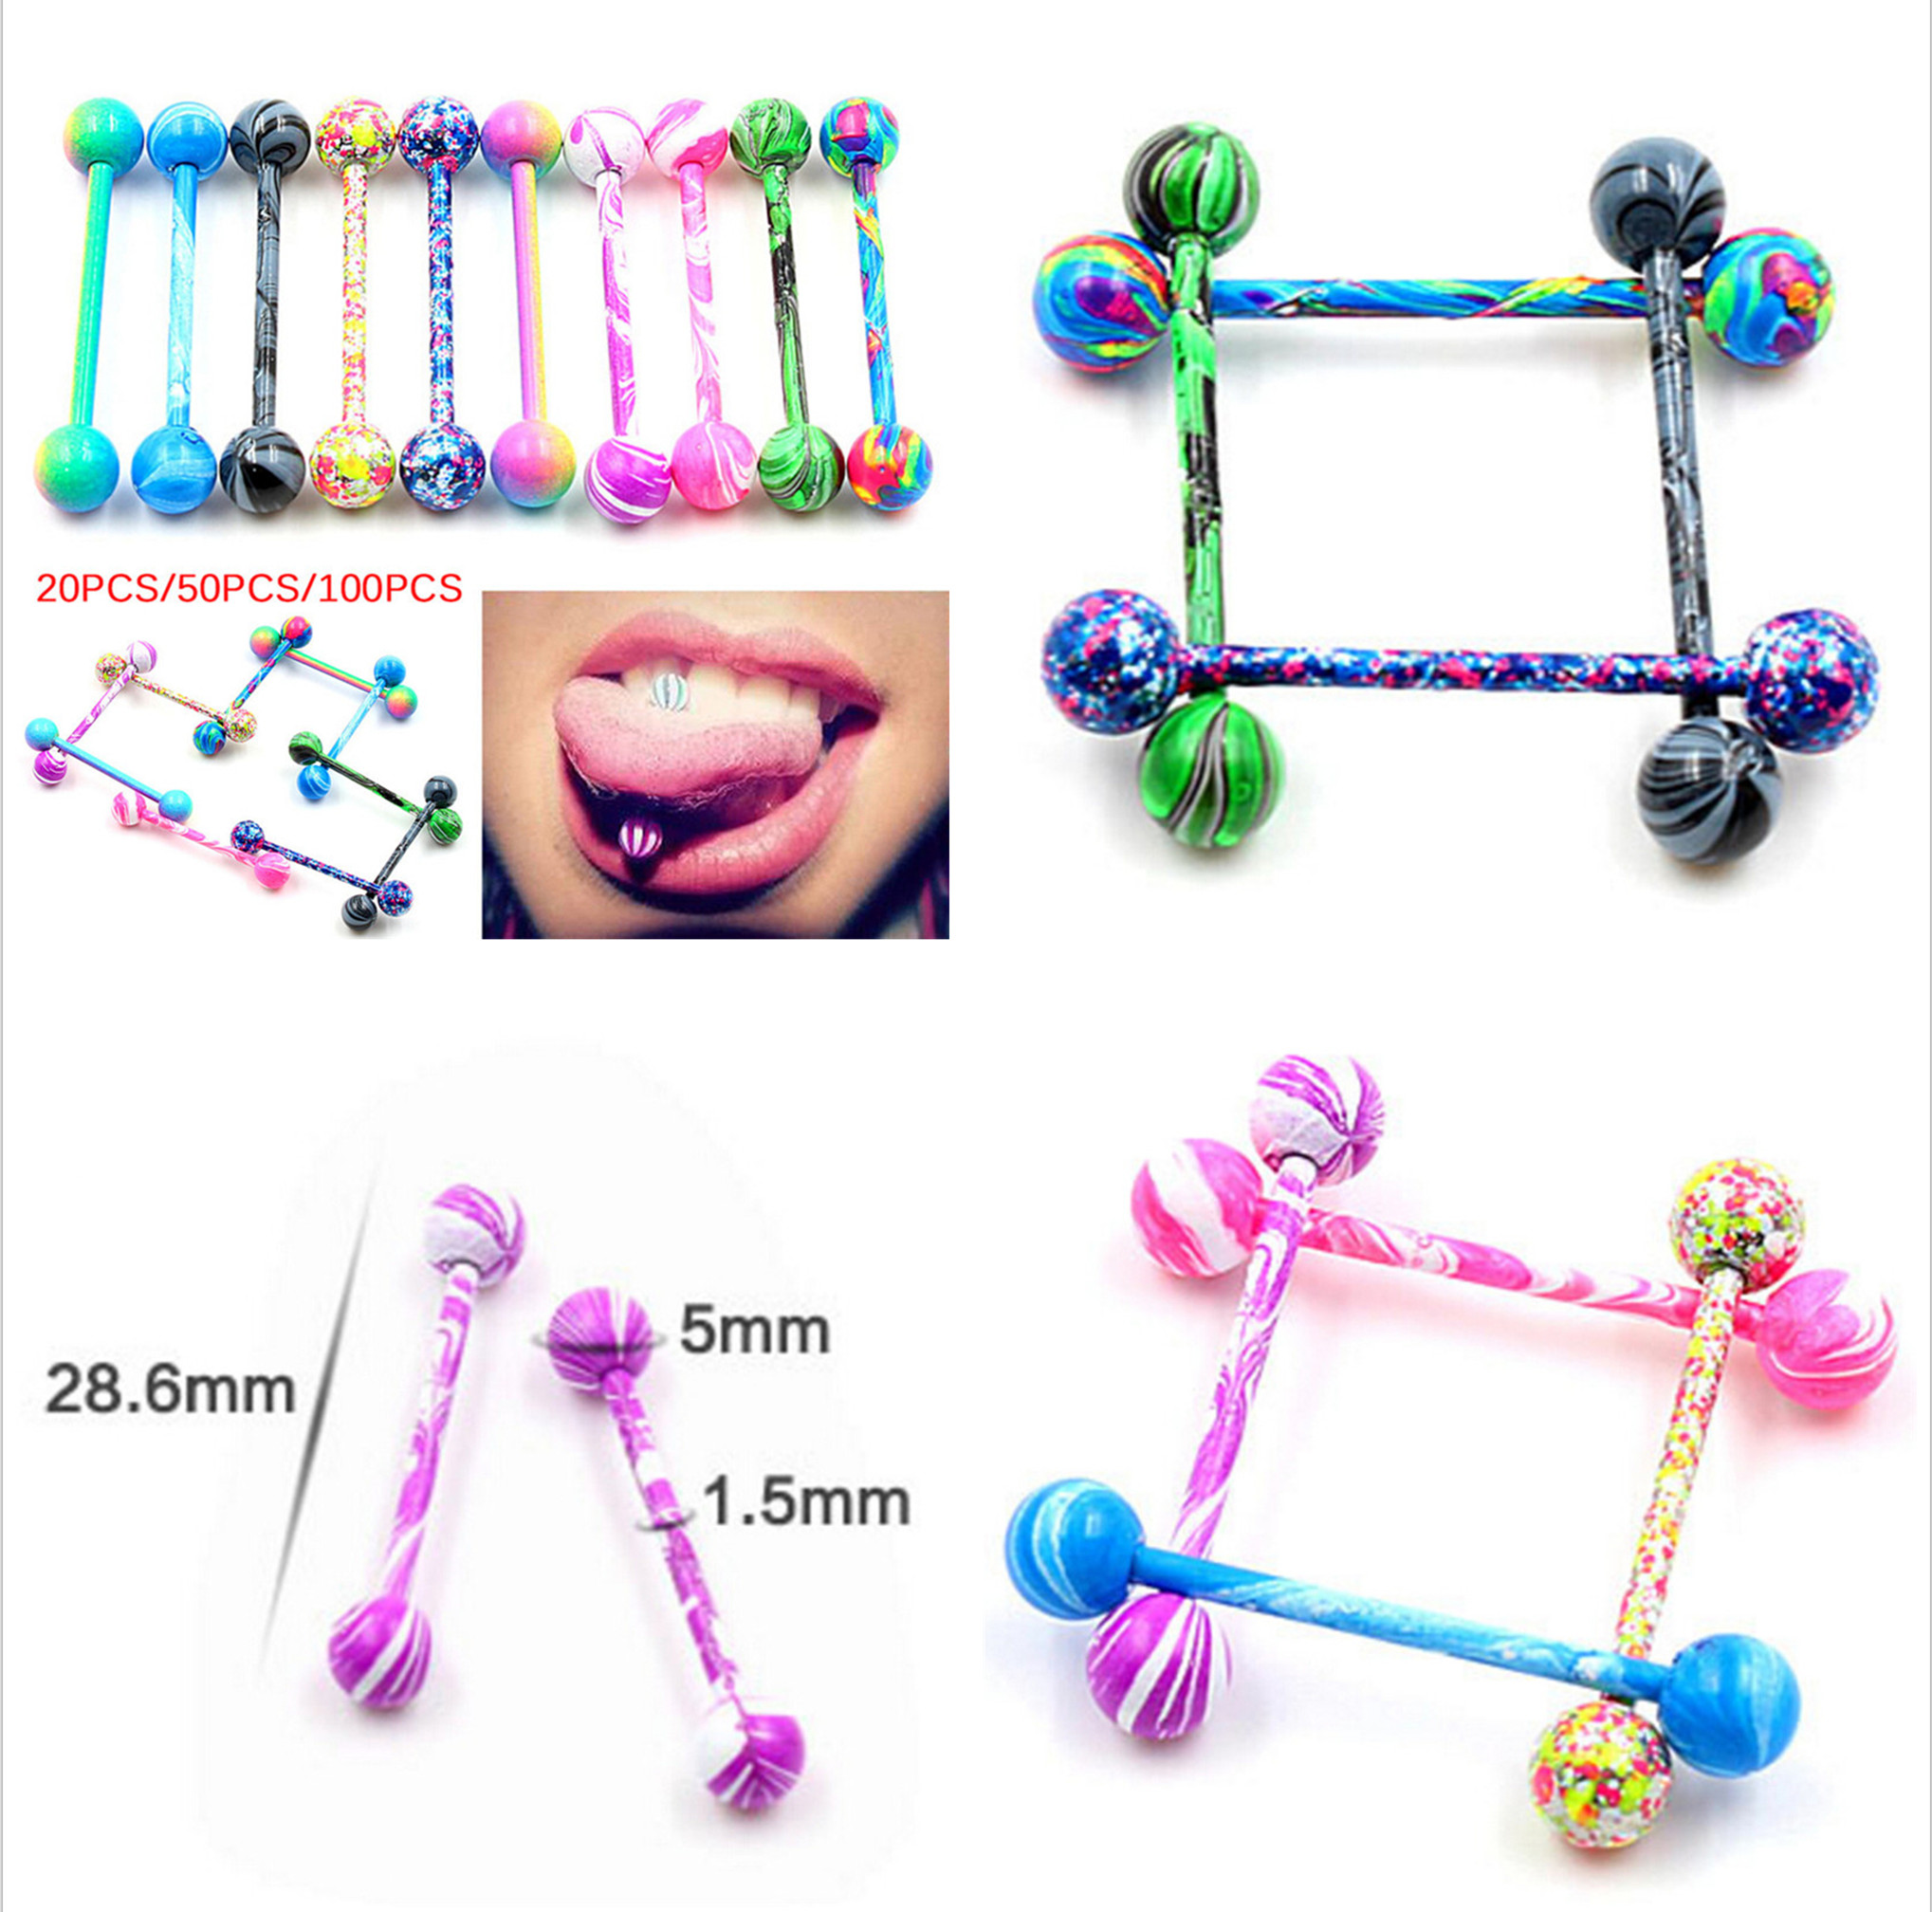 Tongue Piercing10Pcs/Lot Surgical Stainless Steel Tongue Rings Barbell Jewelry Piercing Langue Glitter Design